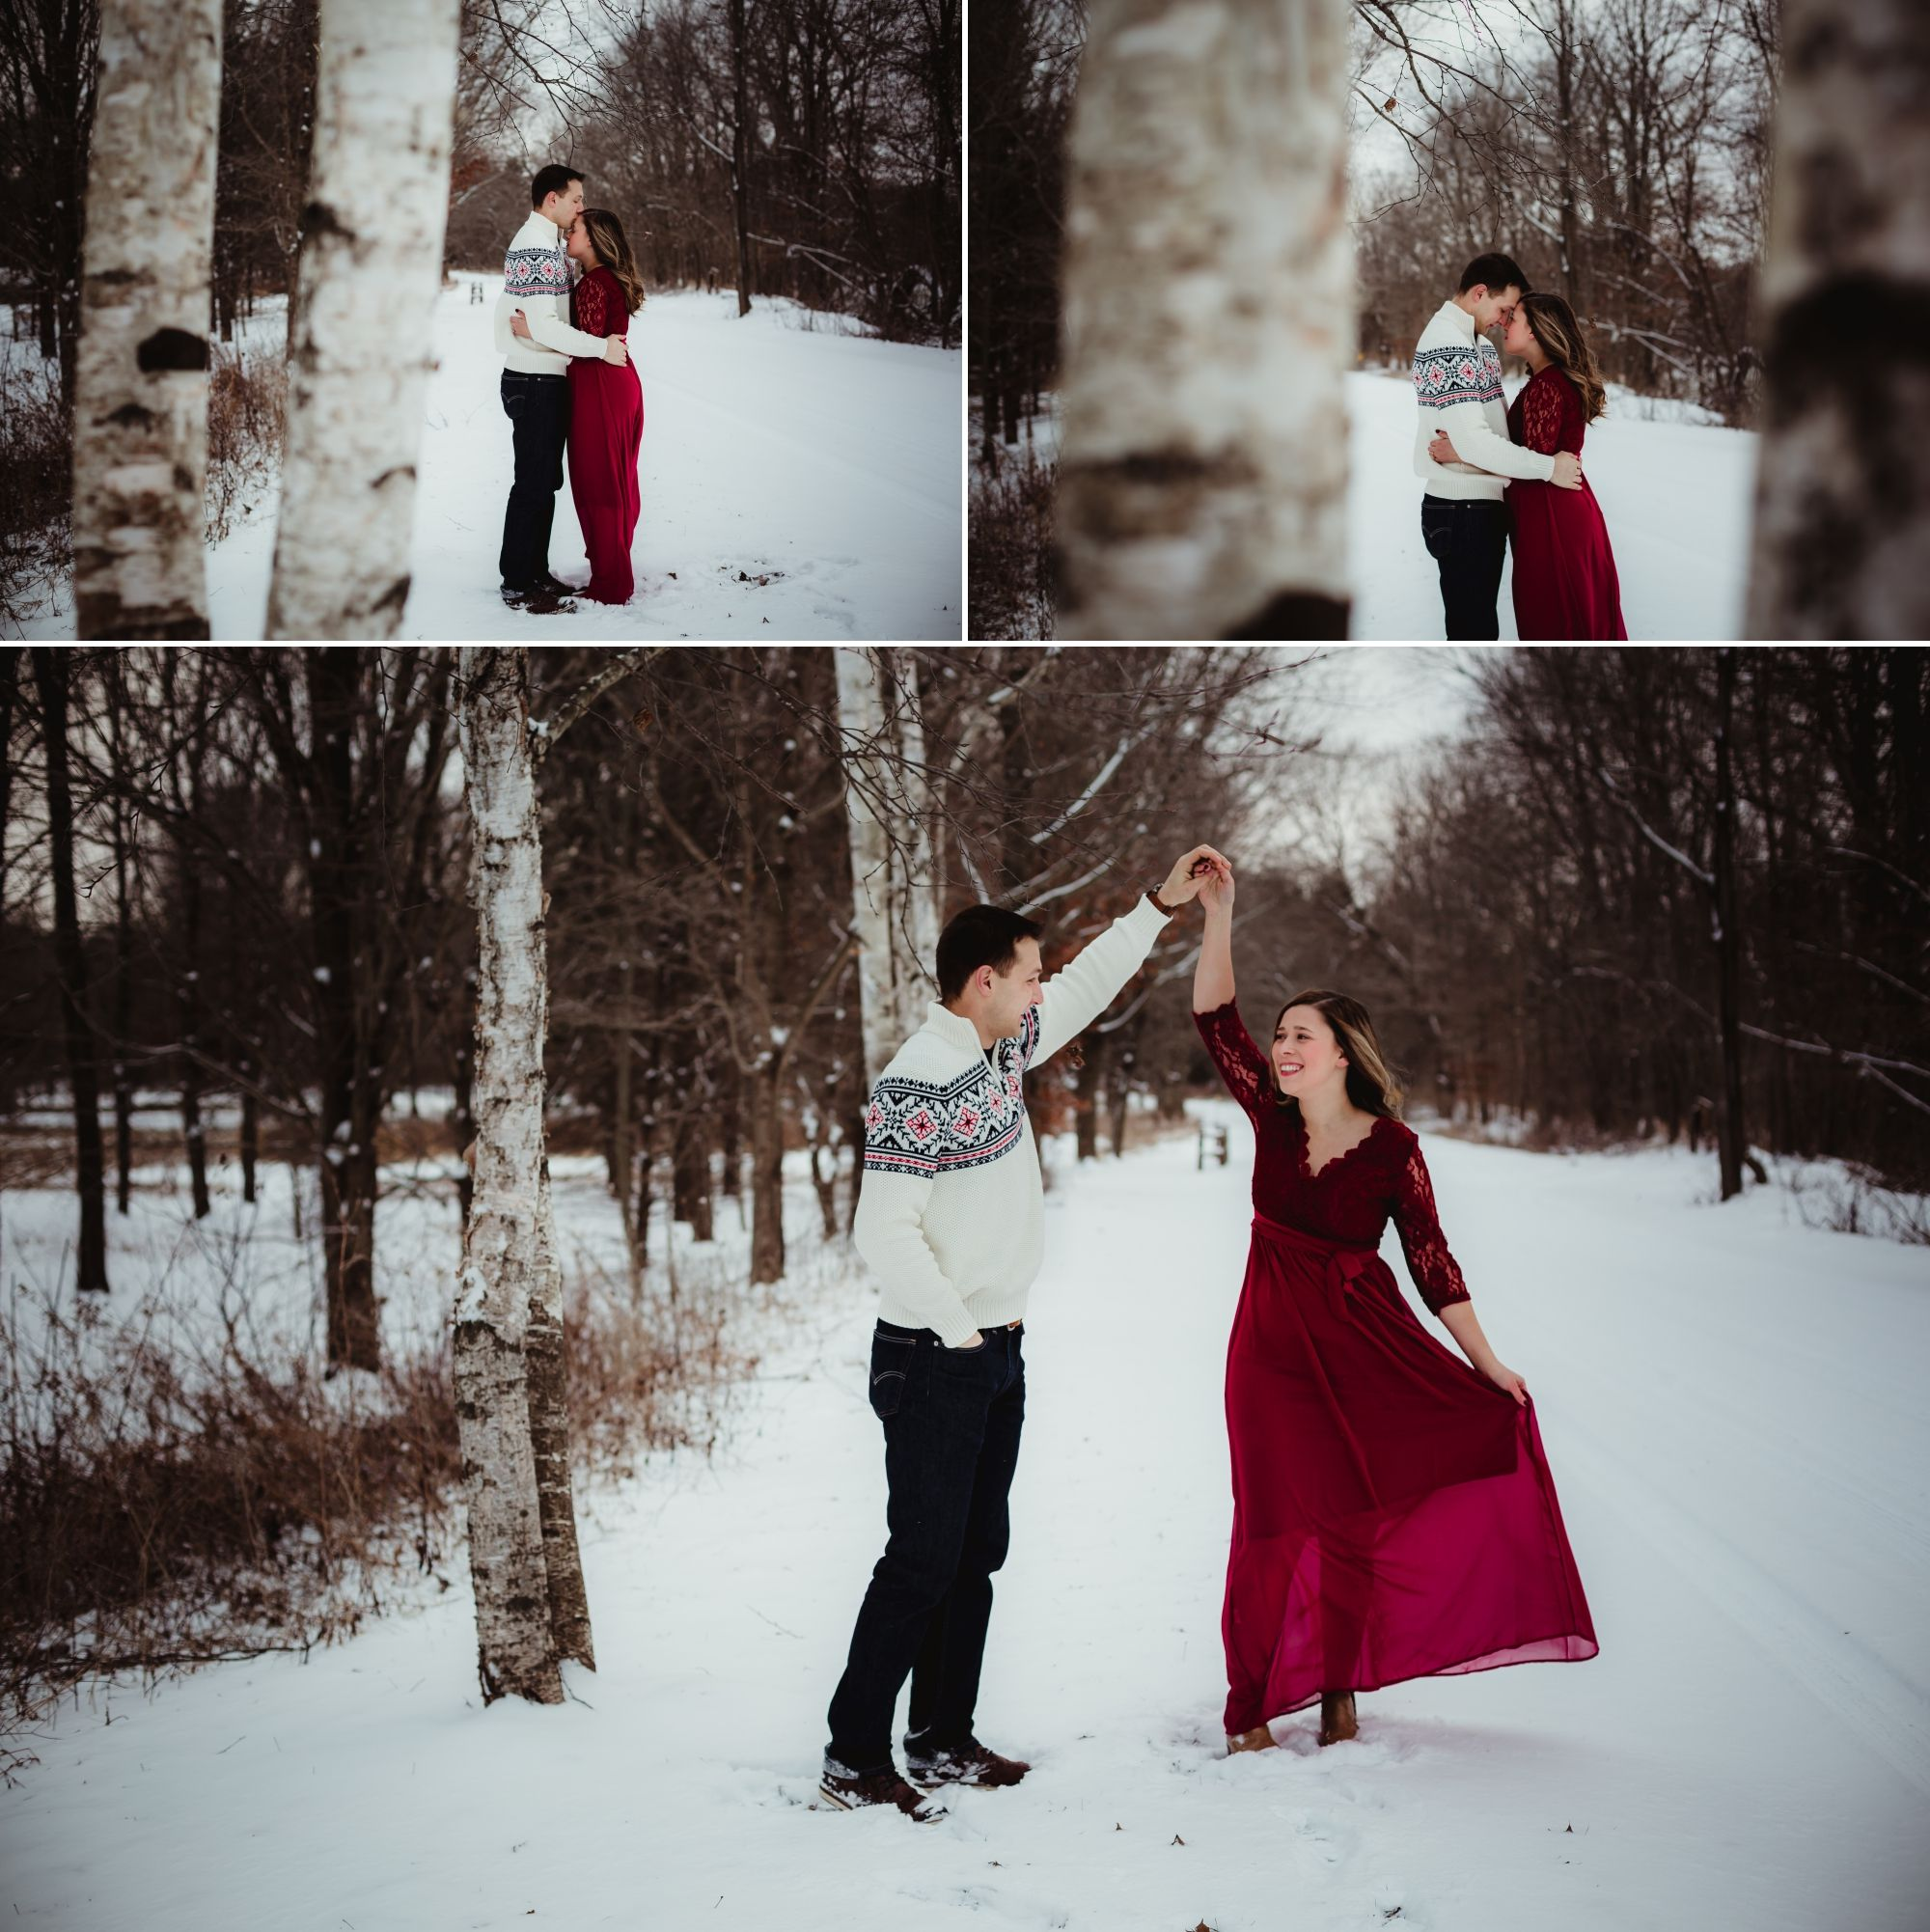 A collage of an engaged couple embracing and dancing near birch trees in the winter.